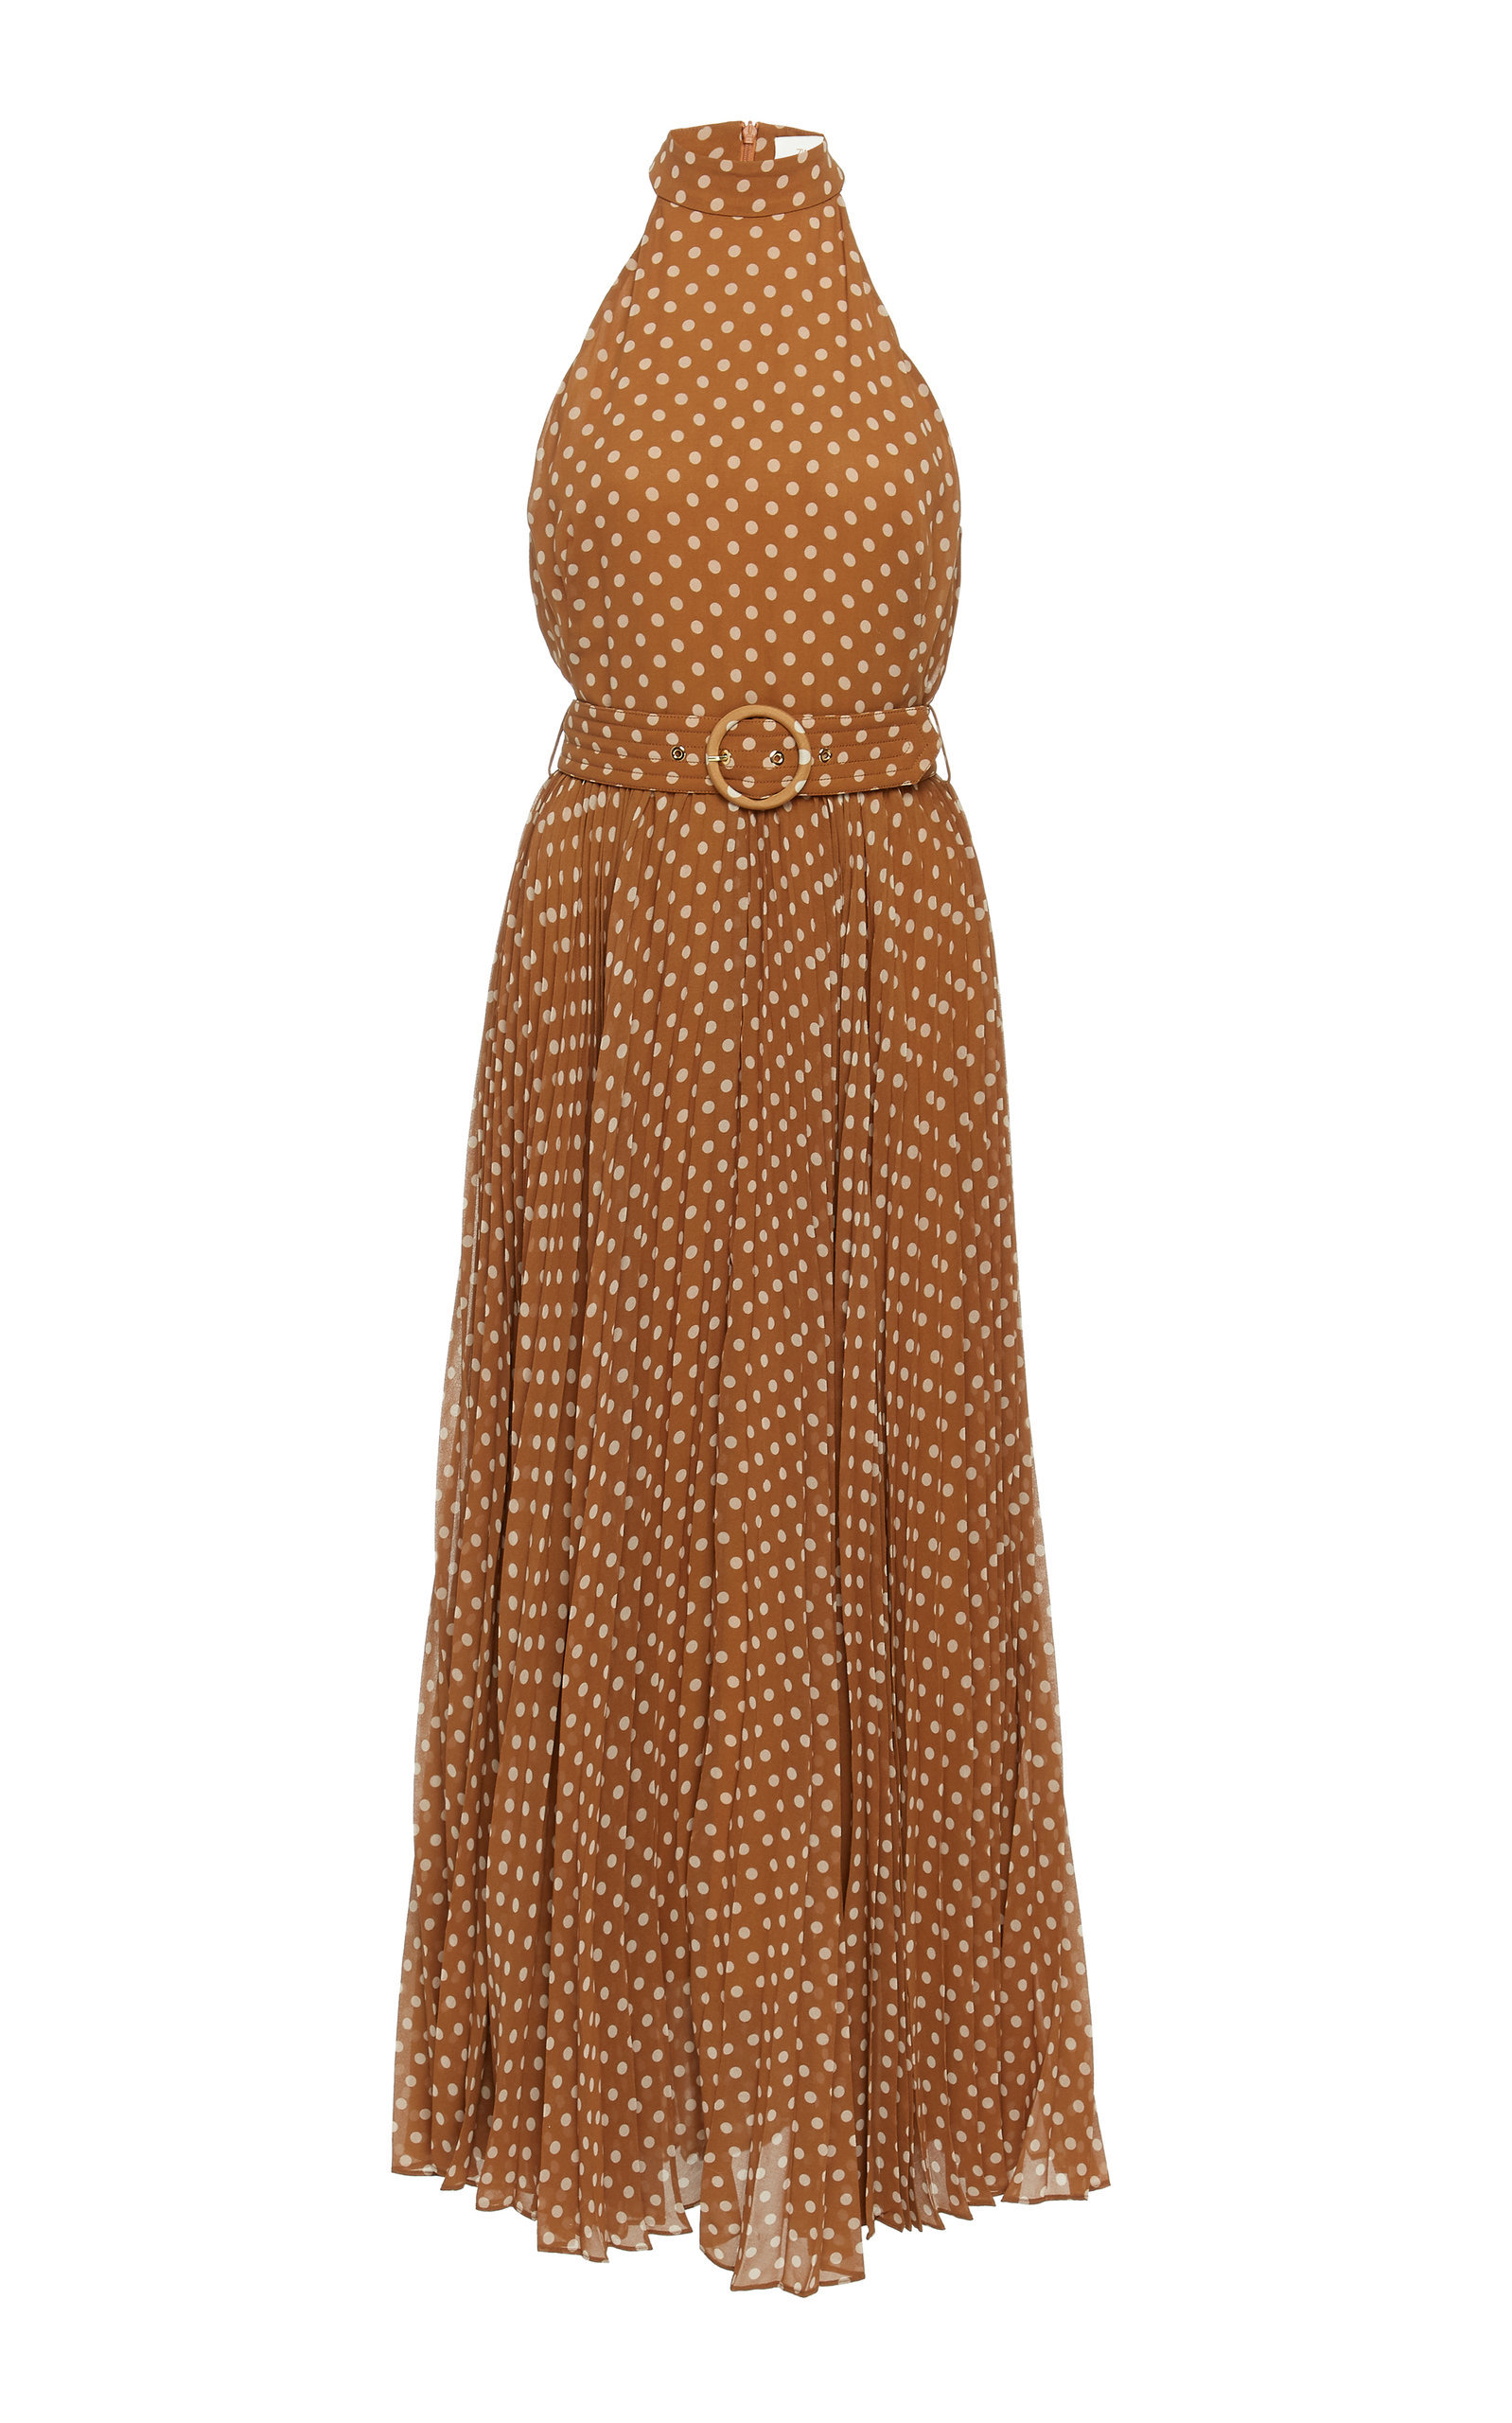 Espionage Polka Dot Pleated Chiffon Dress